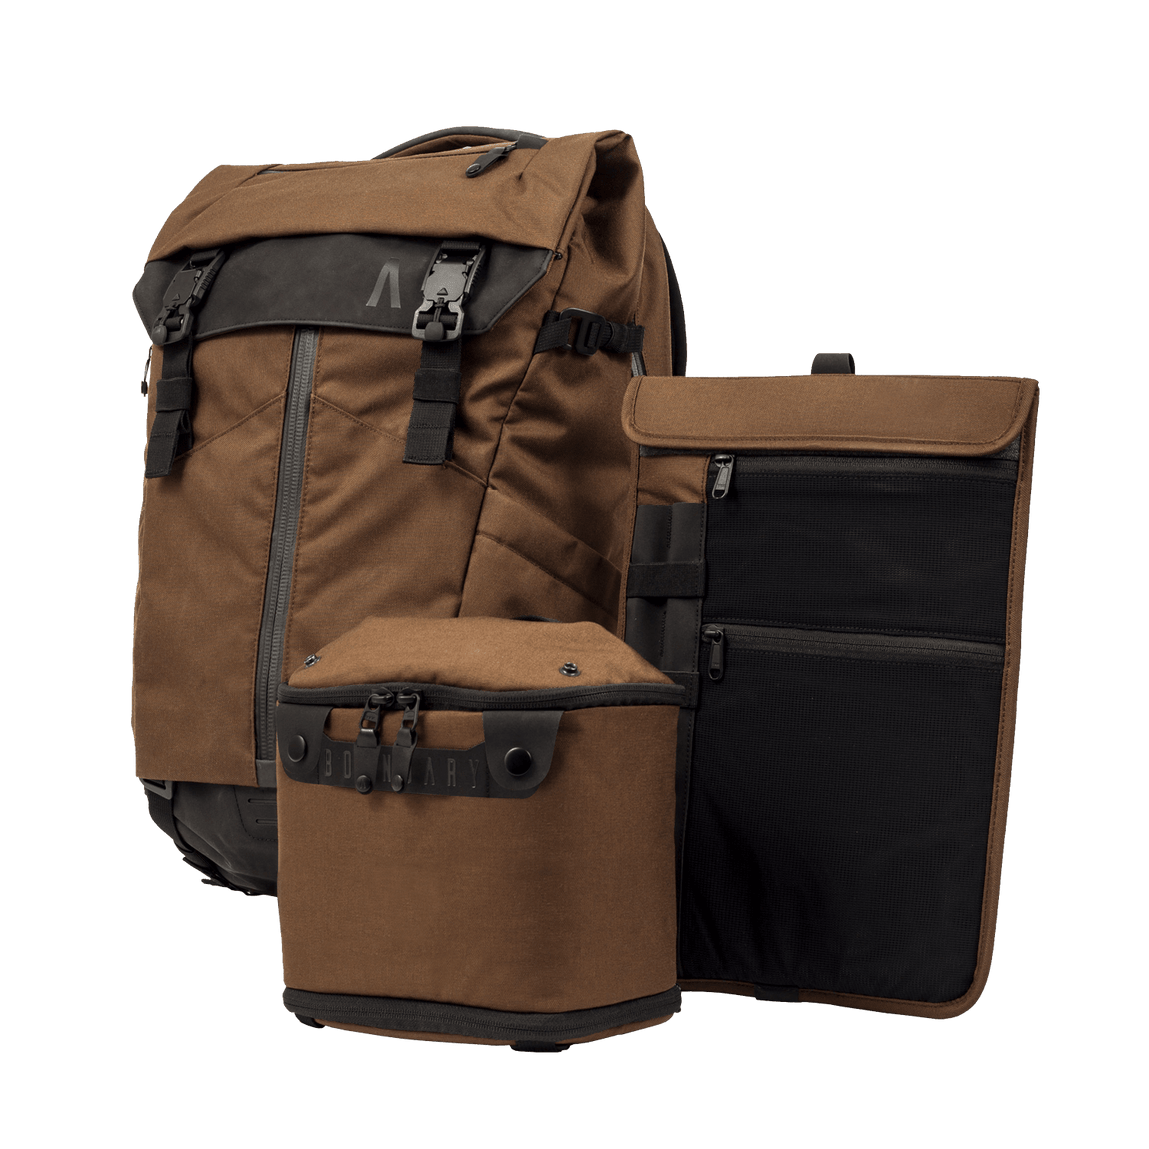 2018 BEST CAMERA   TRAVEL BACKPACK — SEE THE REVIEWS  PRIMA SYSTEM  –  Boundary Supply c3b5b235726c4